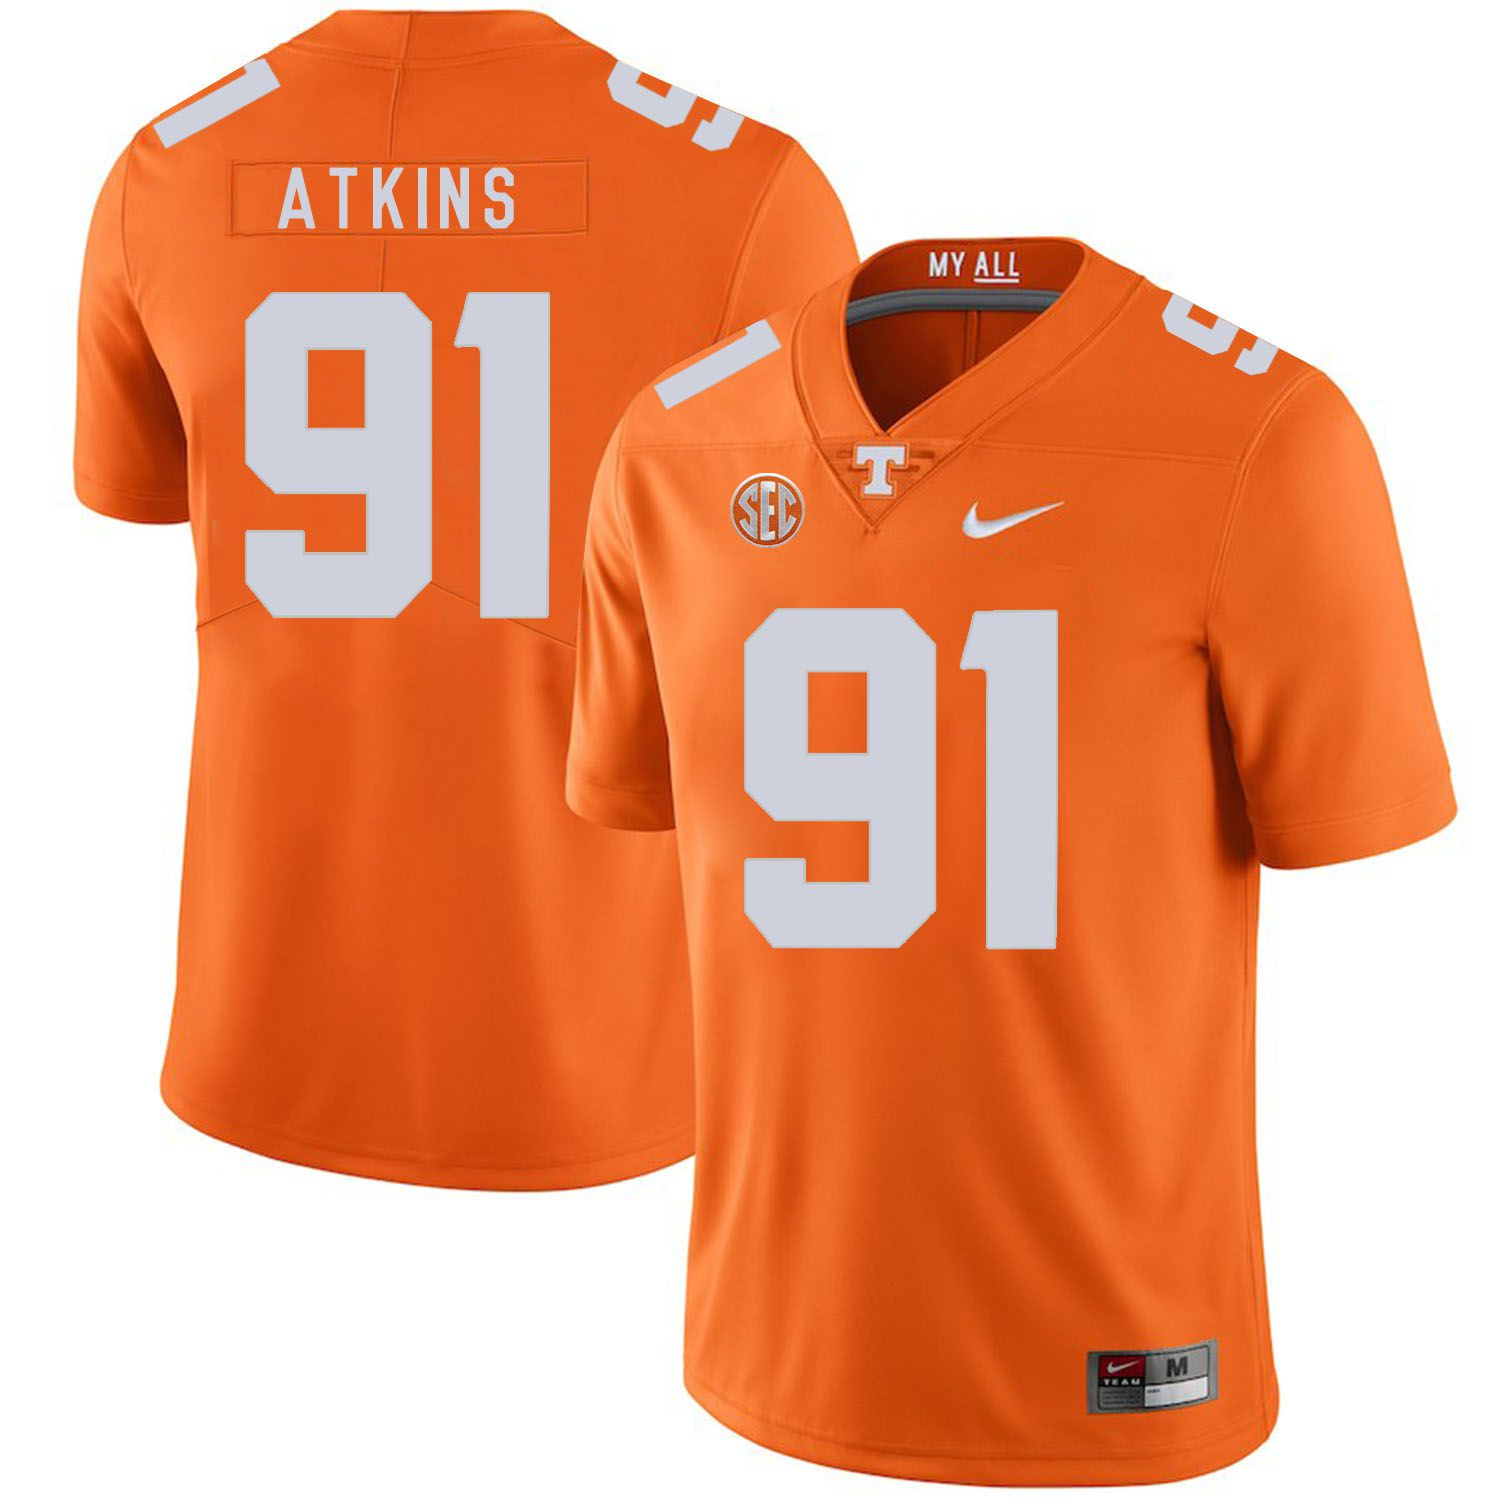 Men Tennessee Volunteers 91 Atkins Orange Customized NCAA Jerseys